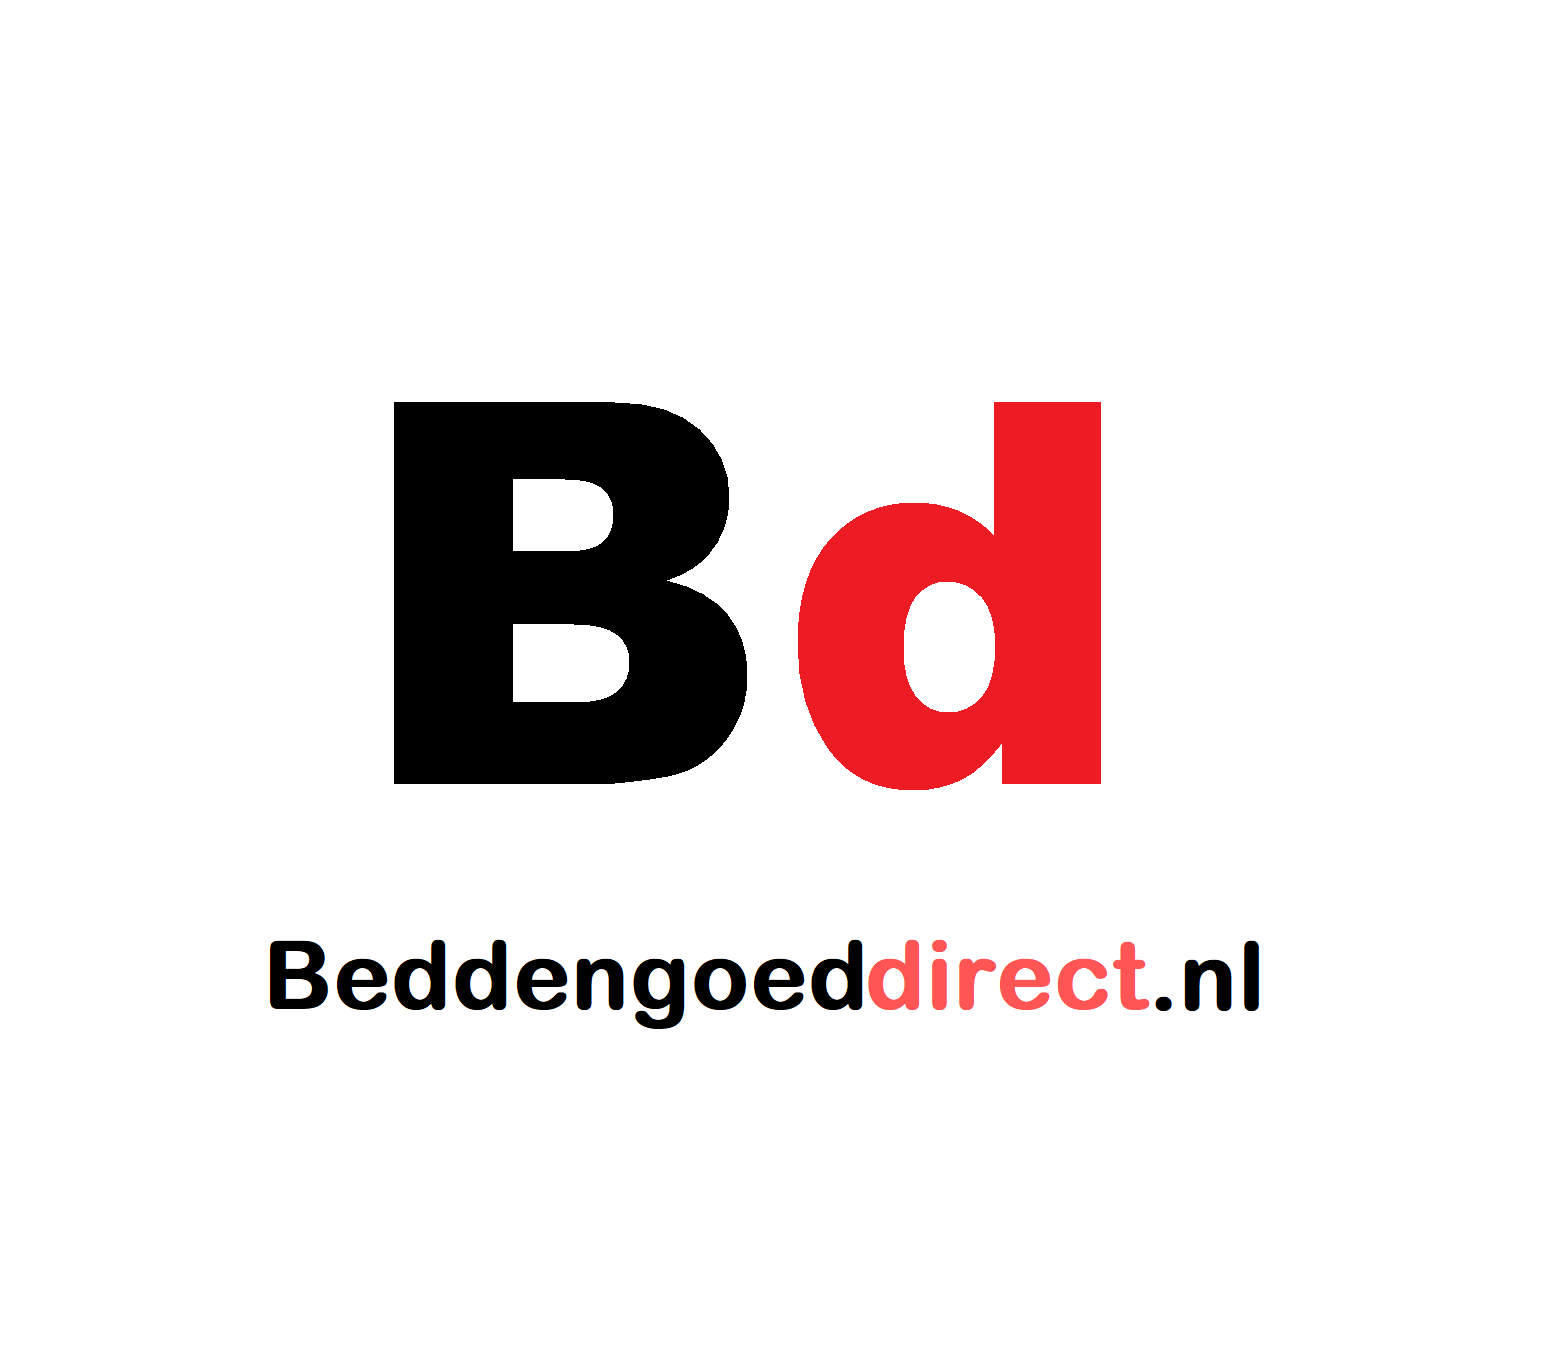 Vind Damai op Beddengoeddirect